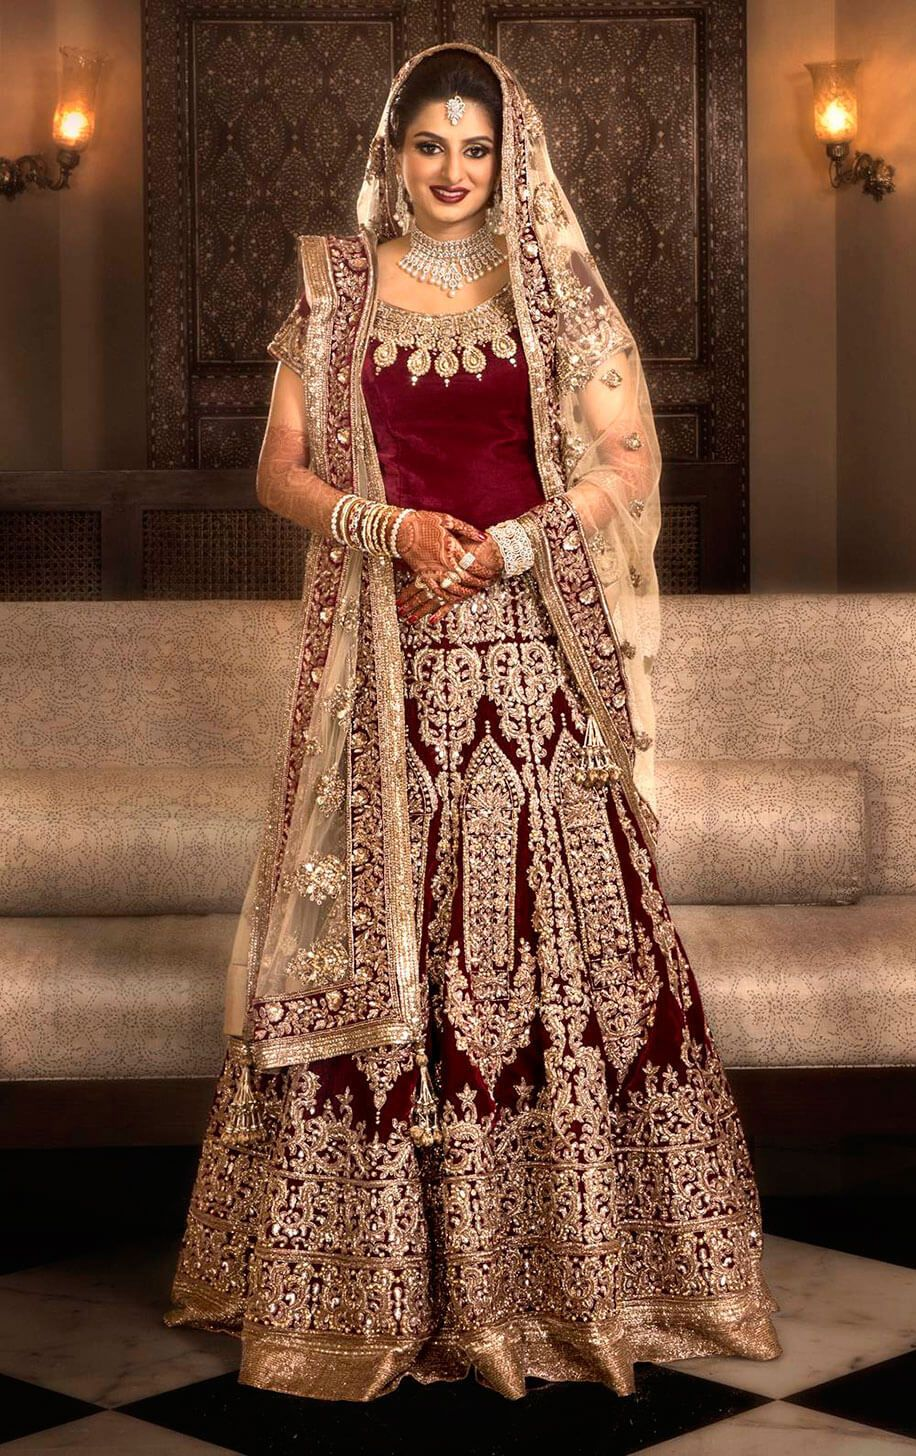 Malhotra Manish bridal lehanga collection pictures forecasting dress for autumn in 2019